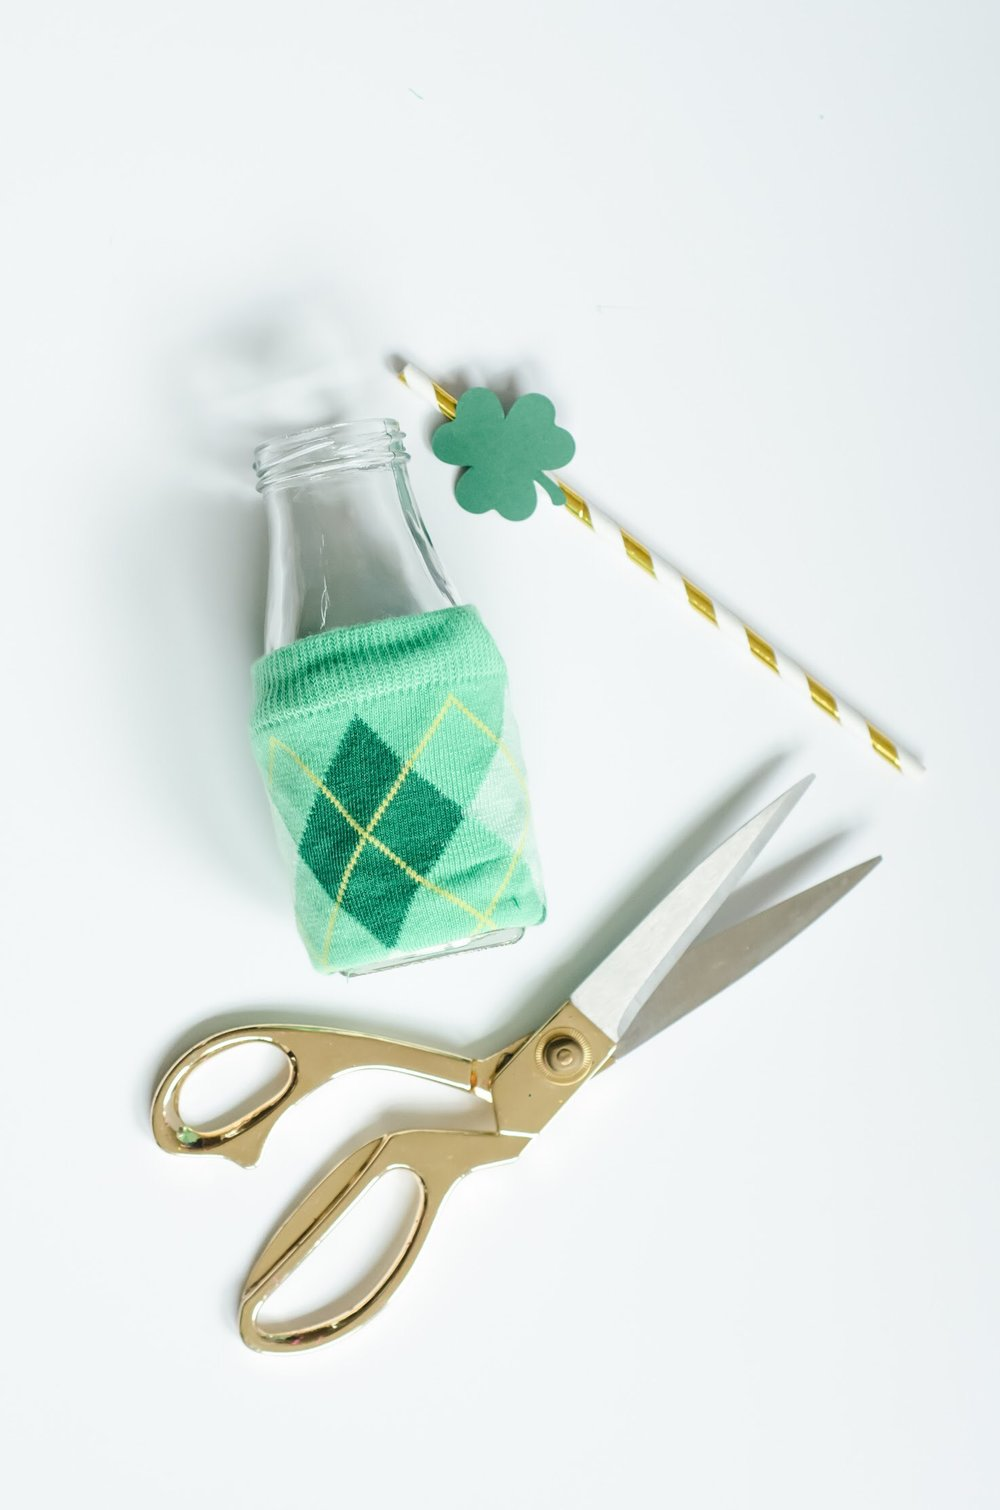 Easy to recreate this St. Patrick's Day DIY Craft at home - step 3